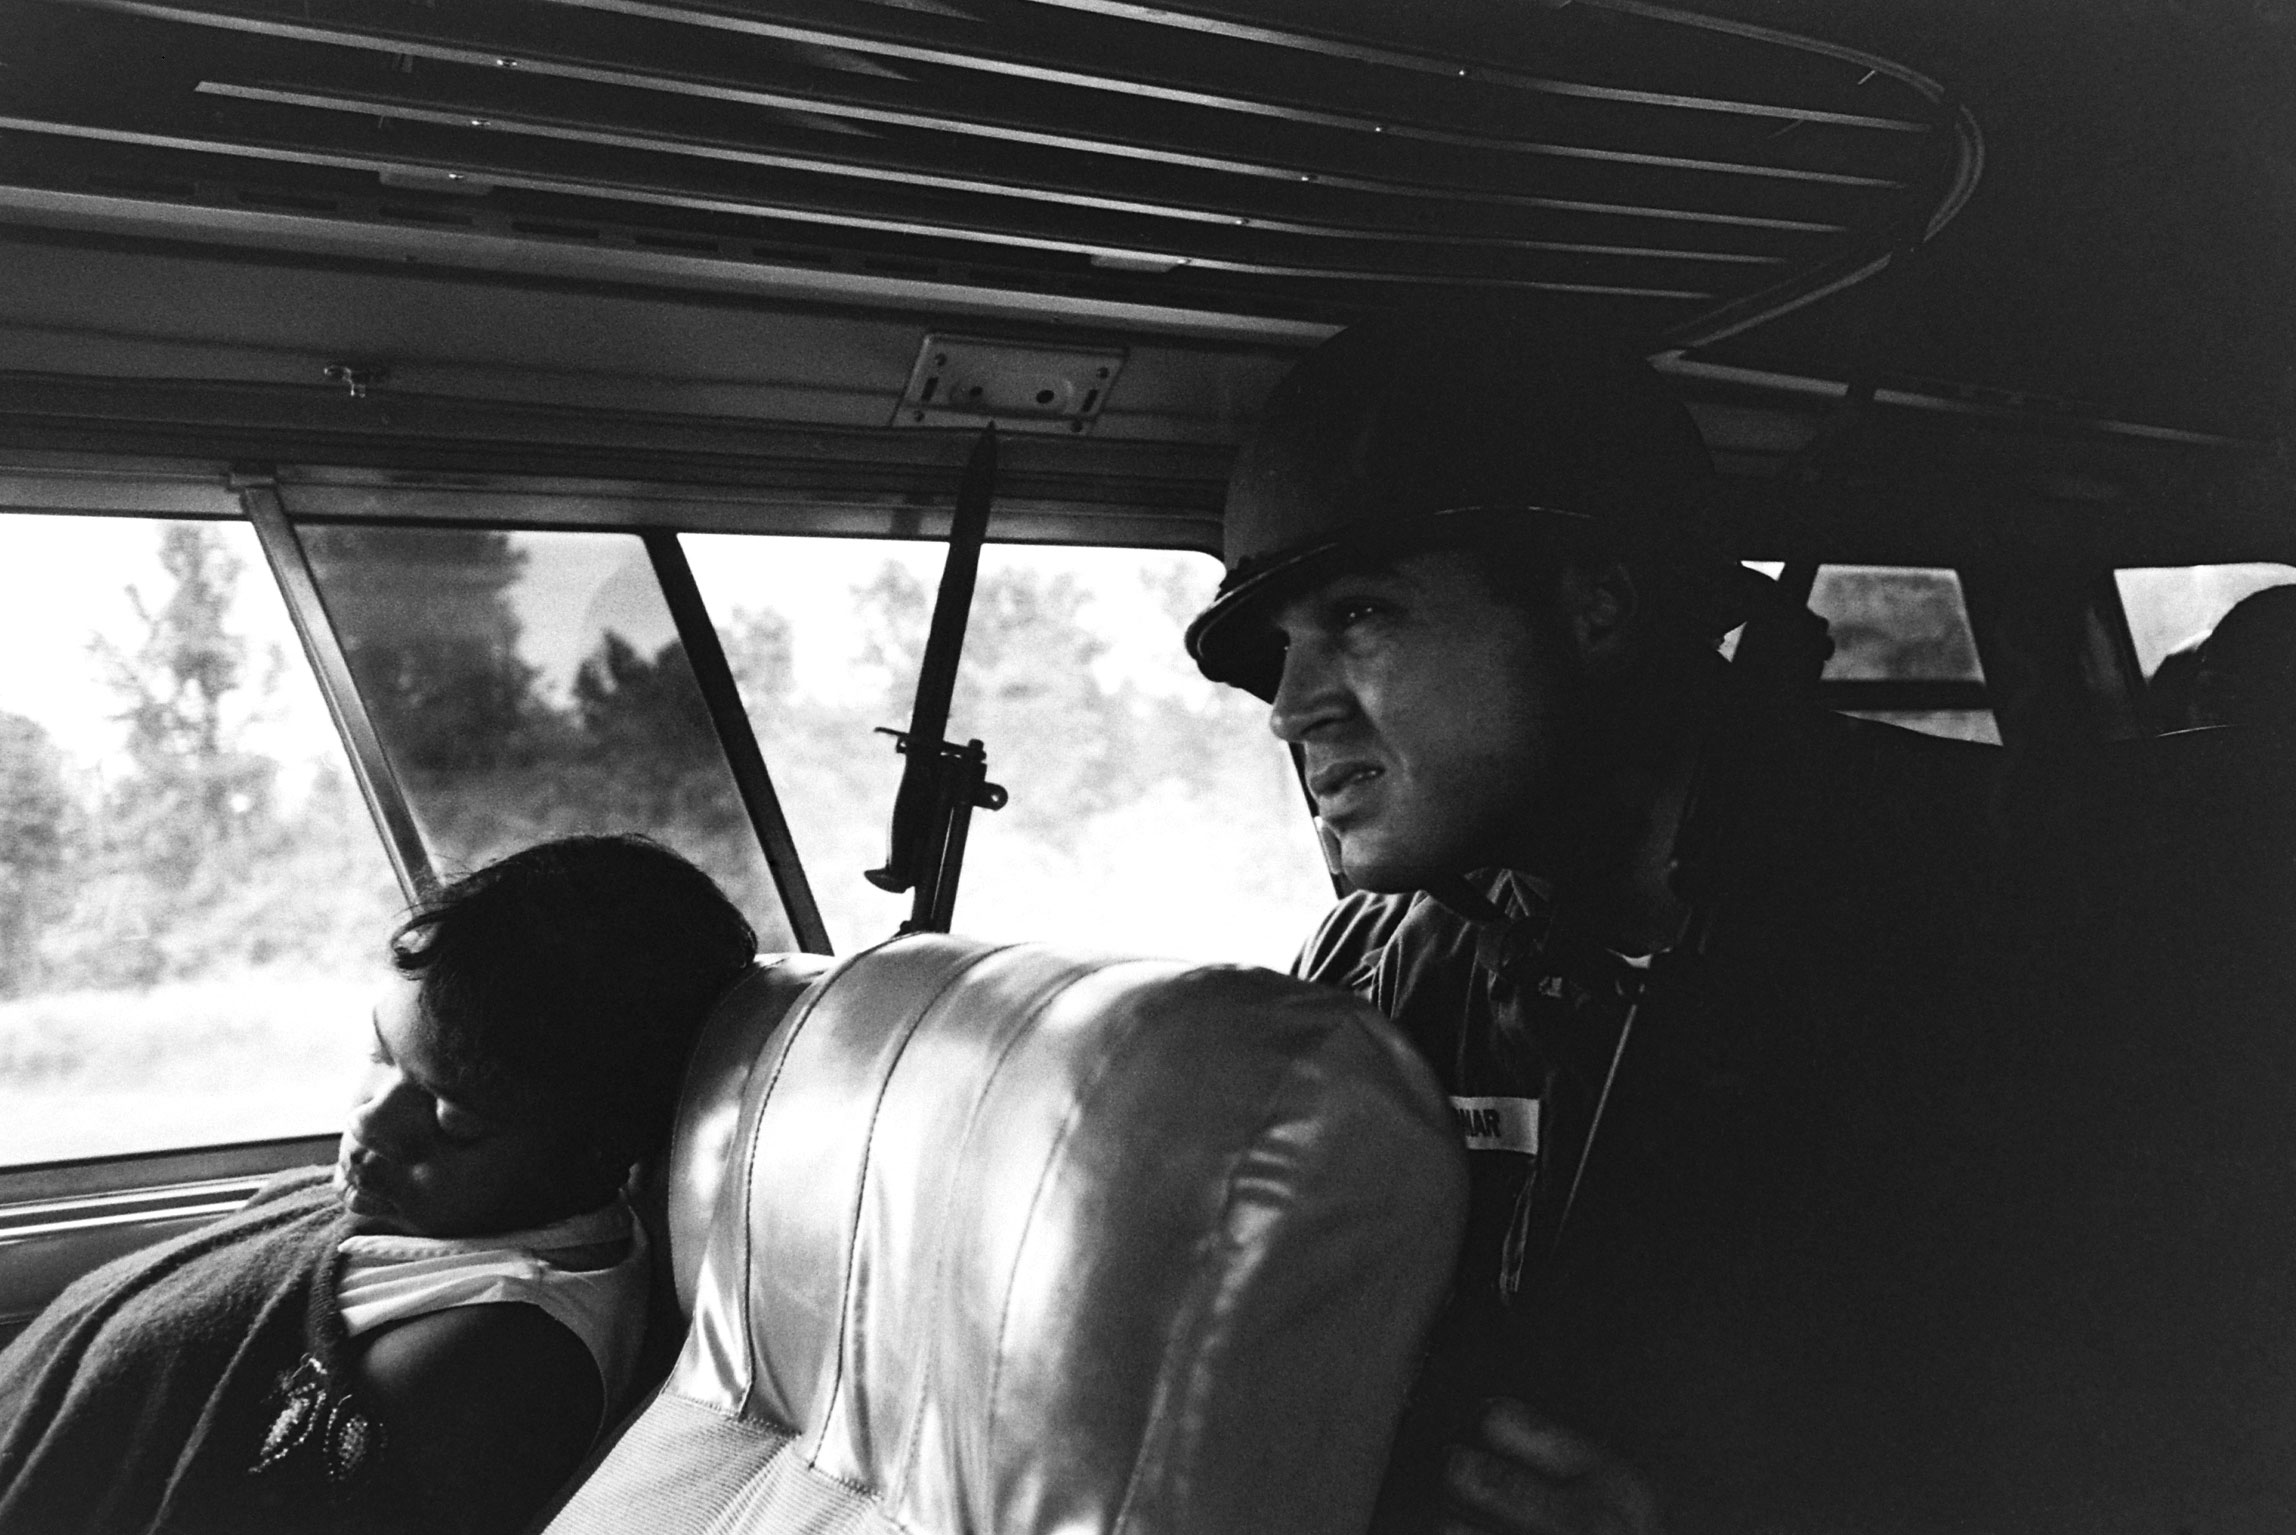 A freedom rider and member of the National Guard on a bus in the Deep South.